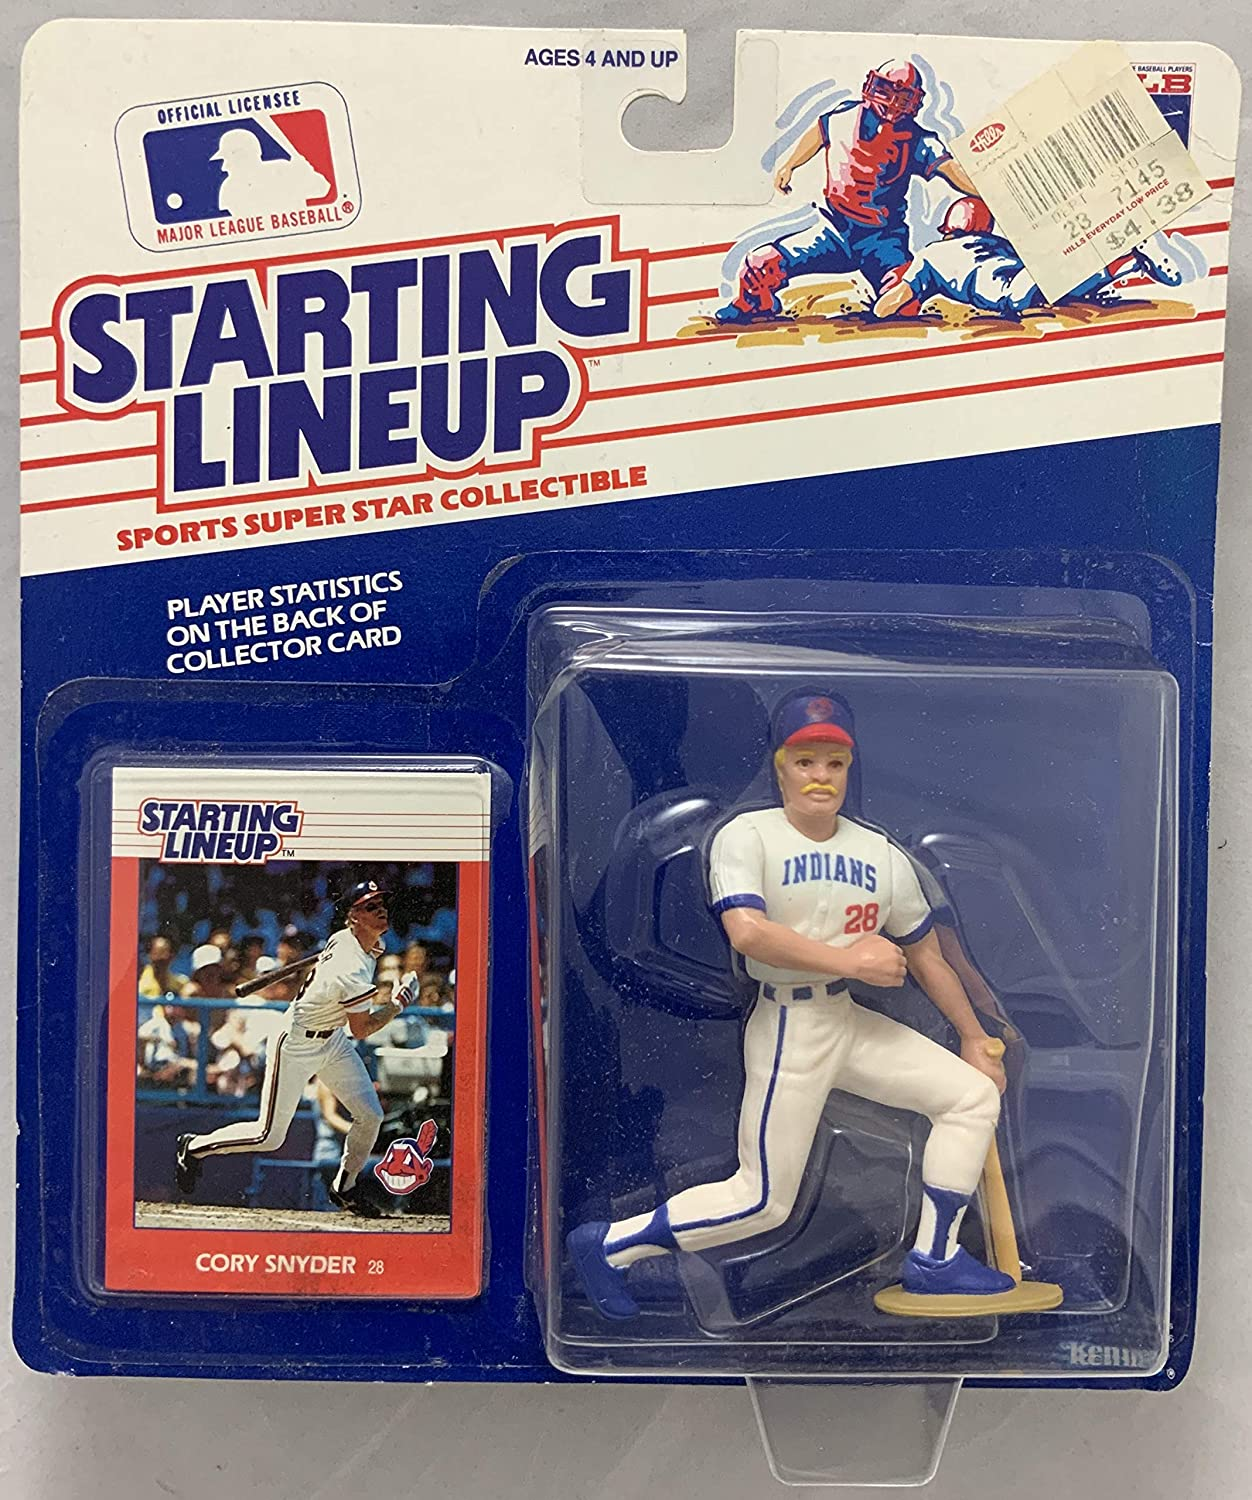 1988 KENNER STARTING LINEUP MLB CORY SNYDER CLEVELAND INDIANS MOC